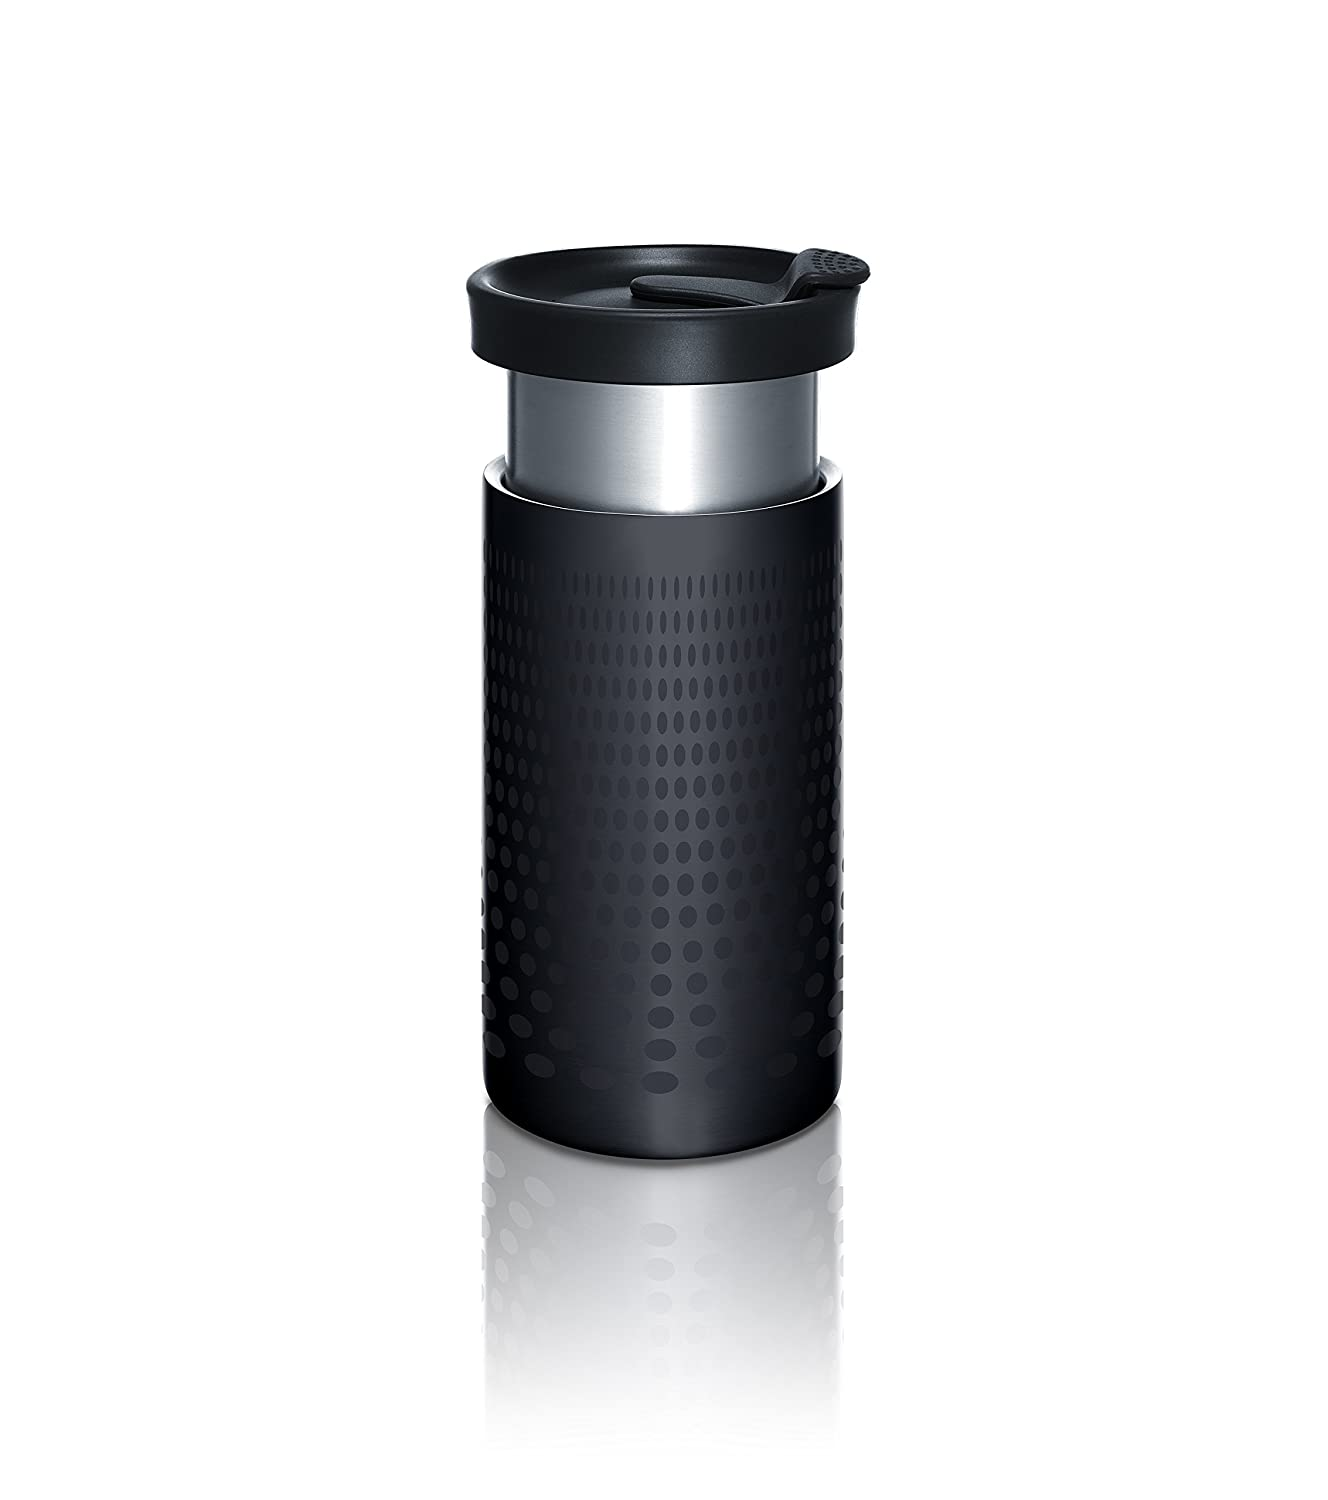 Presse by bobble, On The Go Brewer